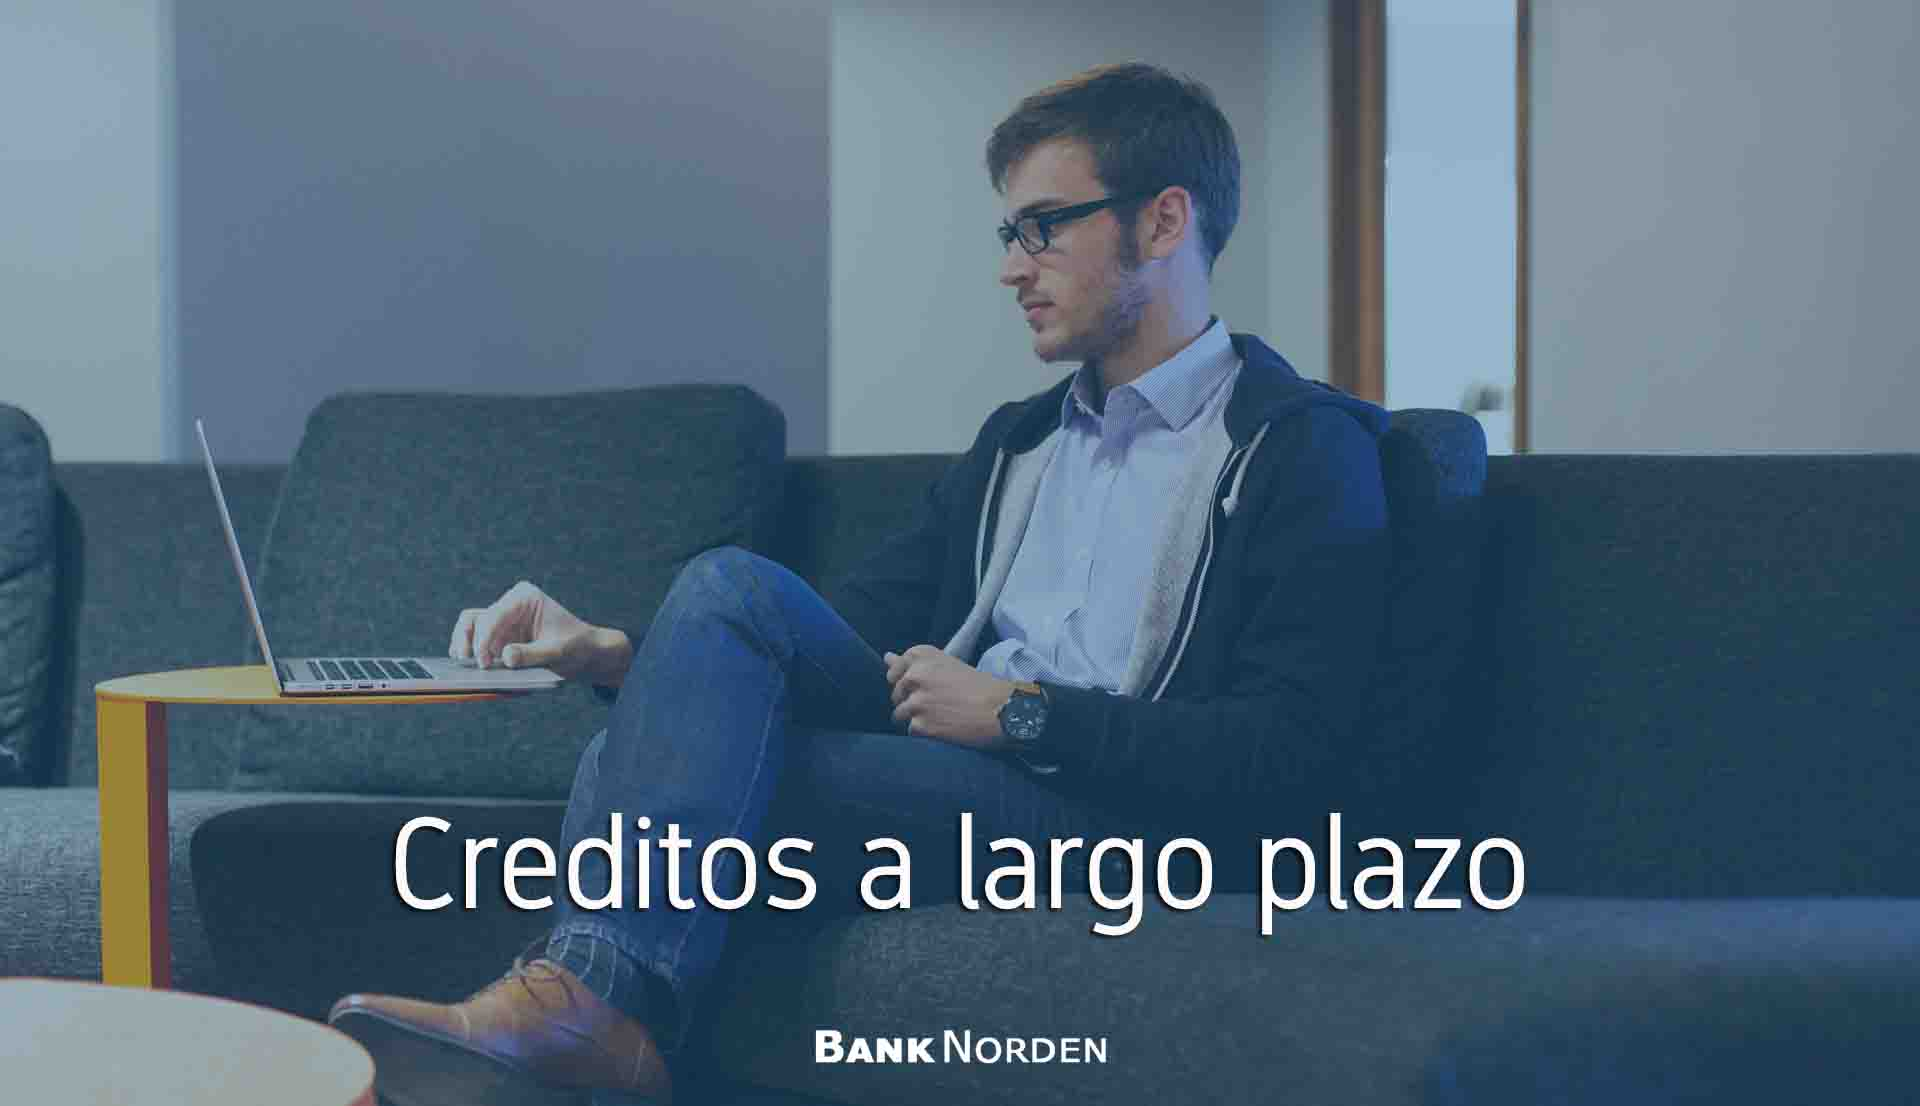 Creditos a largo plazo